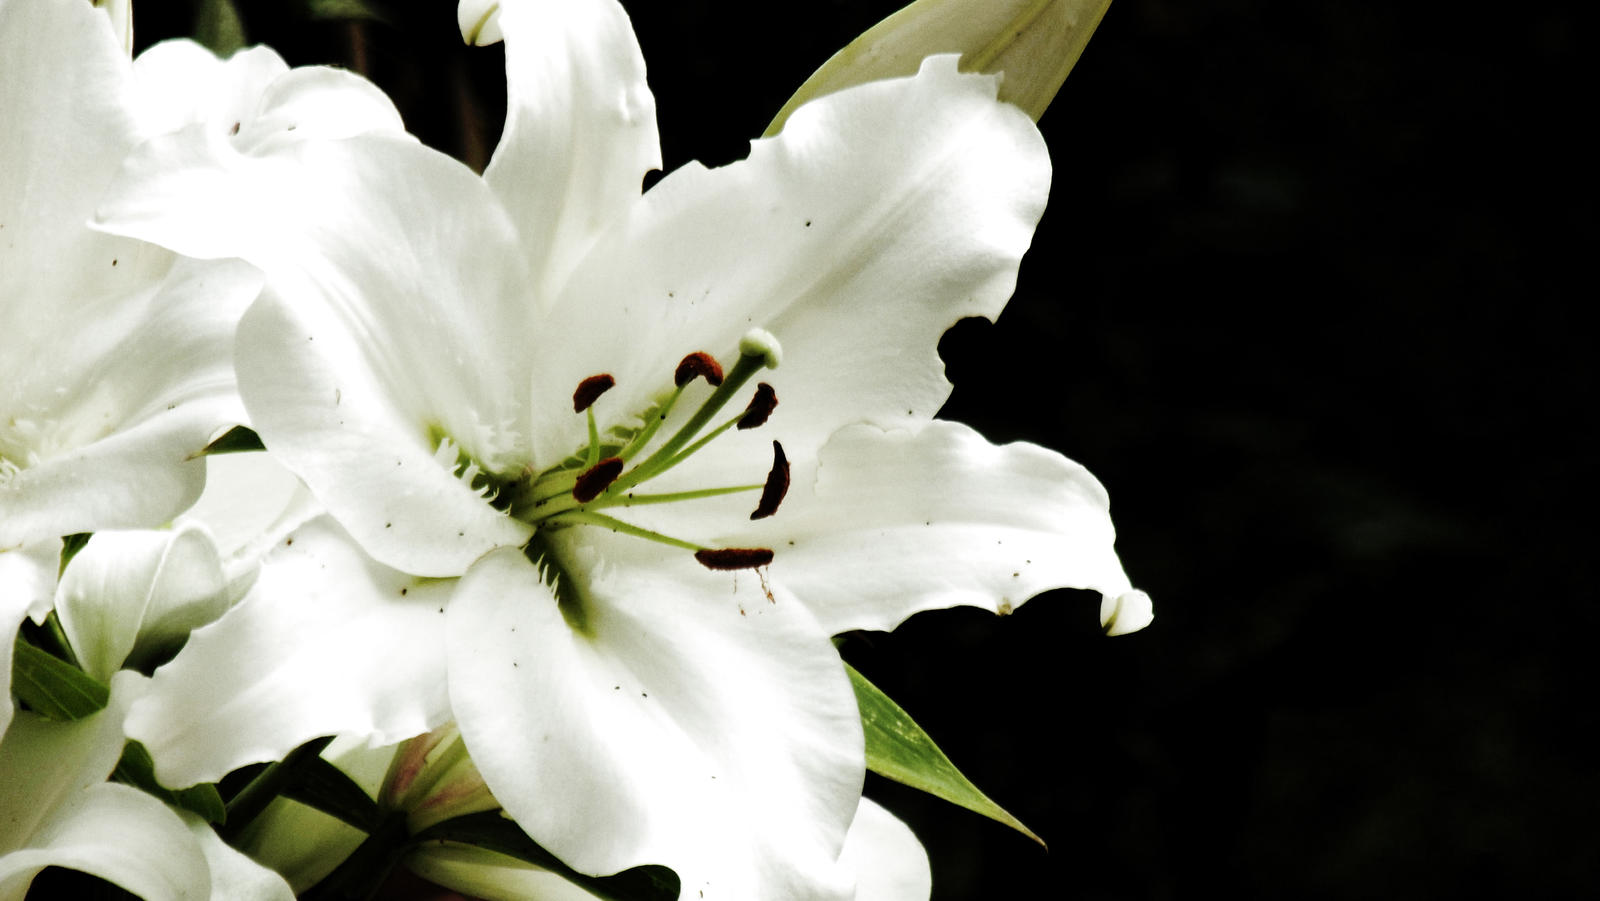 white lily on black by graphic rusty on DeviantArt